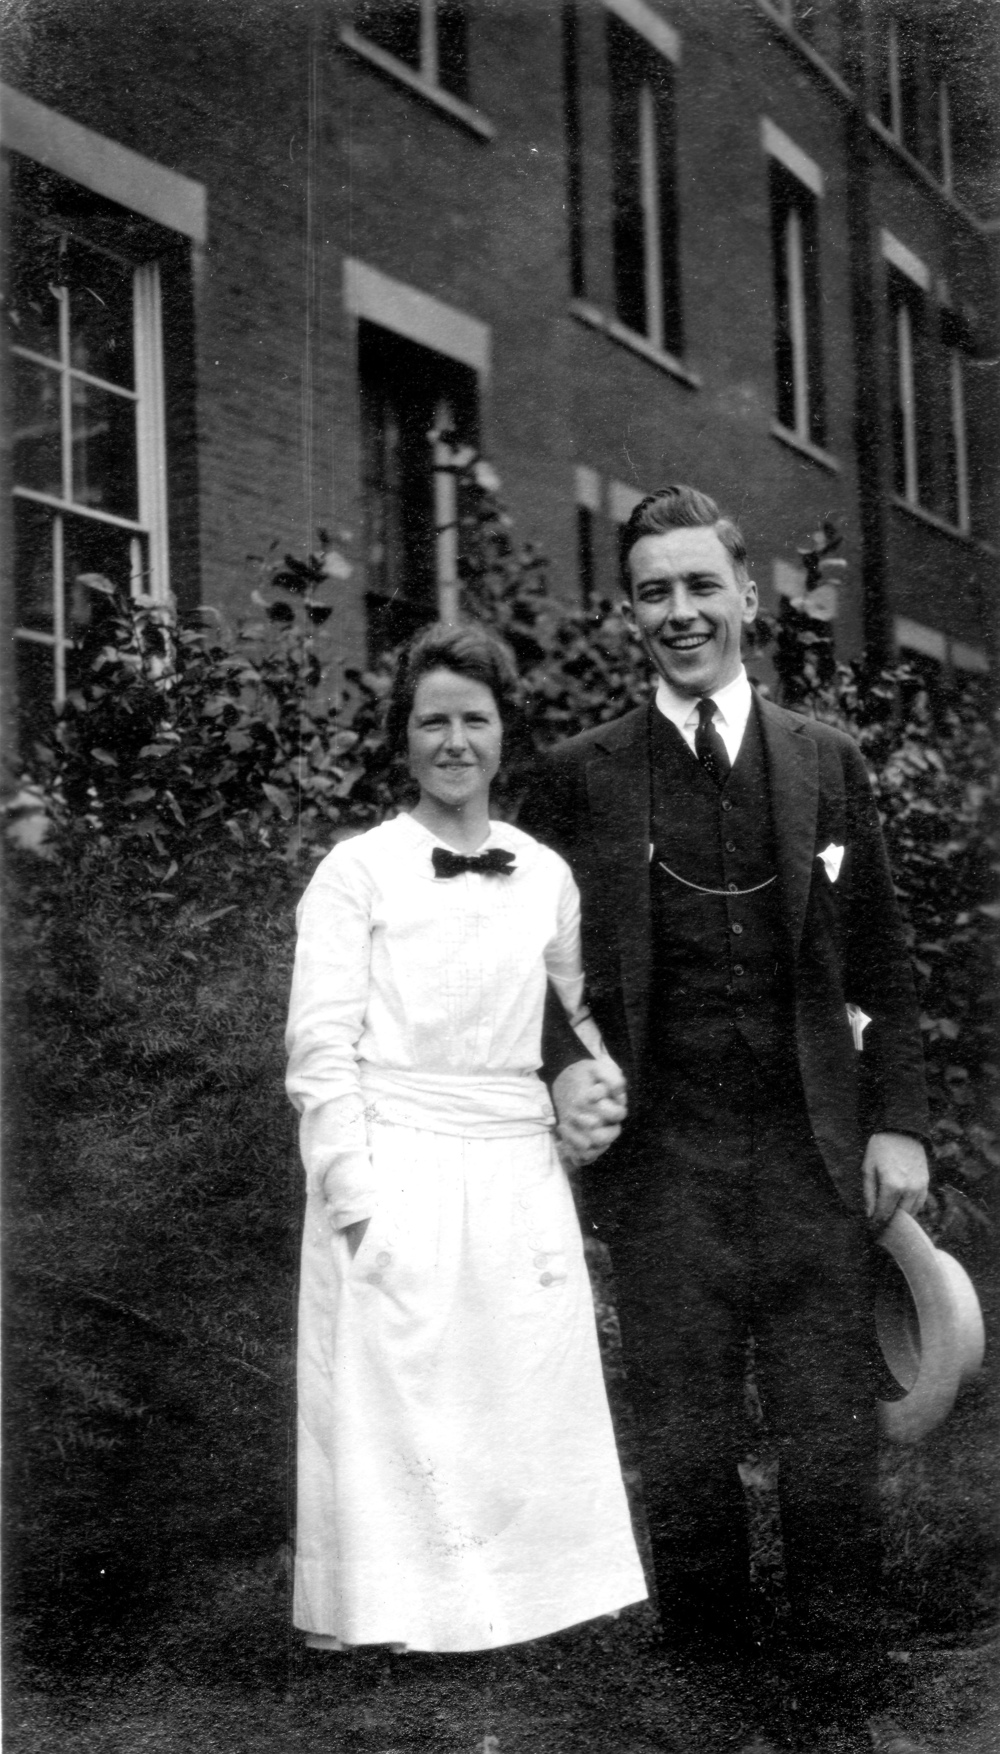 Betty & Paul at the Young Friends General Conference, 1922